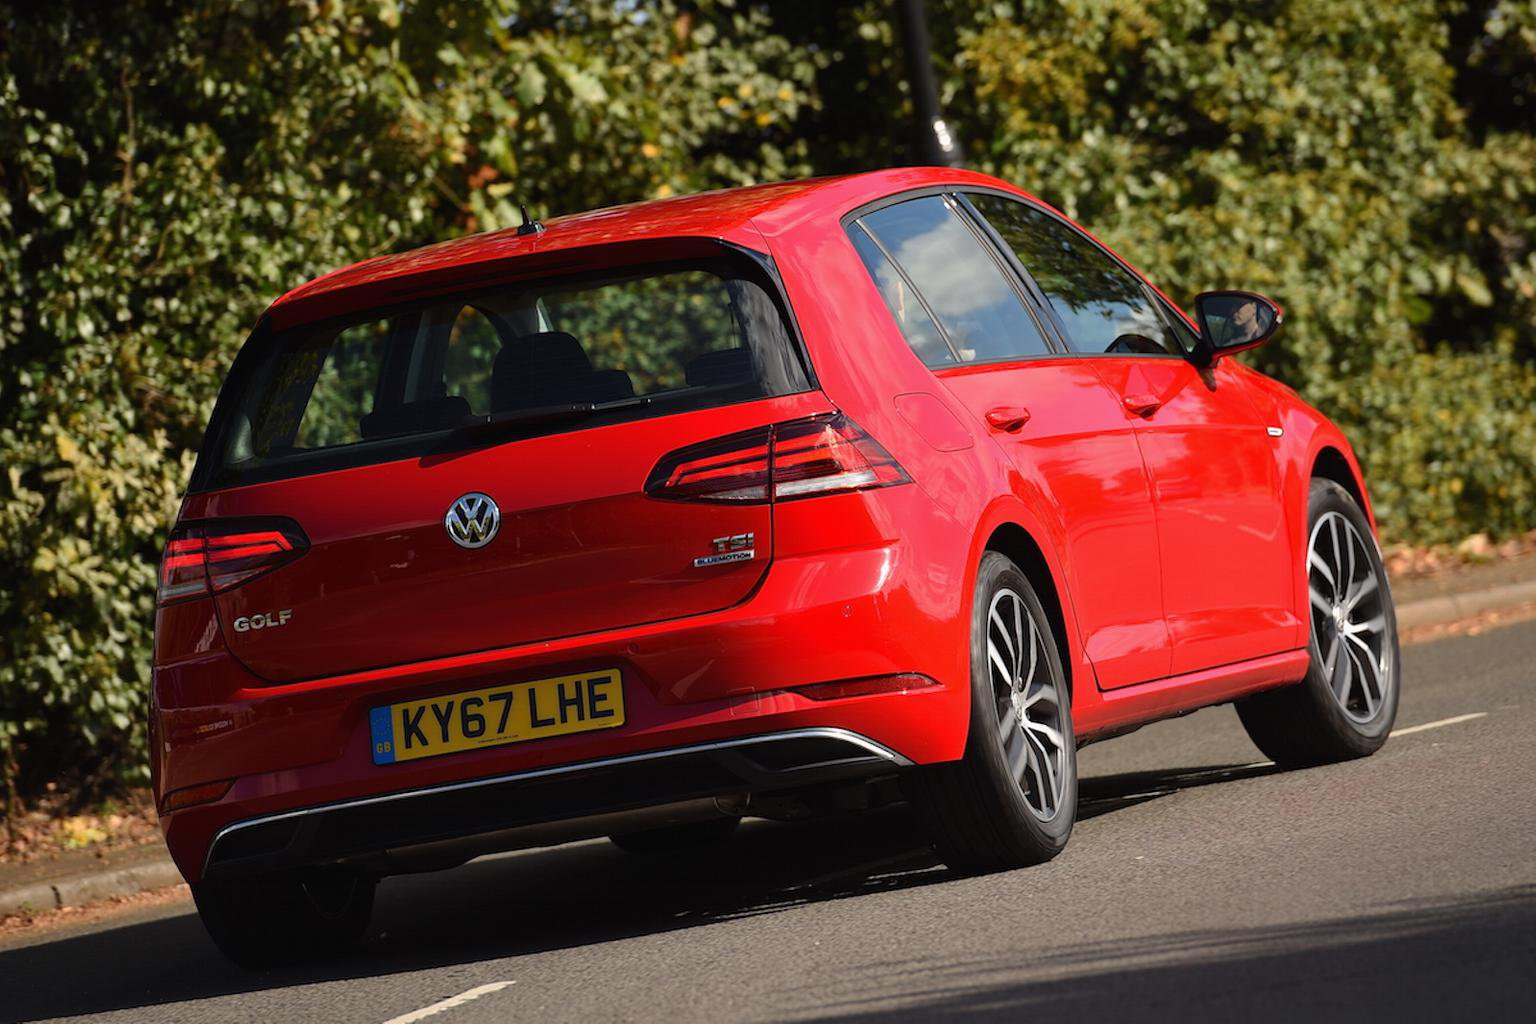 2017 Volkswagen Golf 1.5 TSI Evo review - price, specs and release date